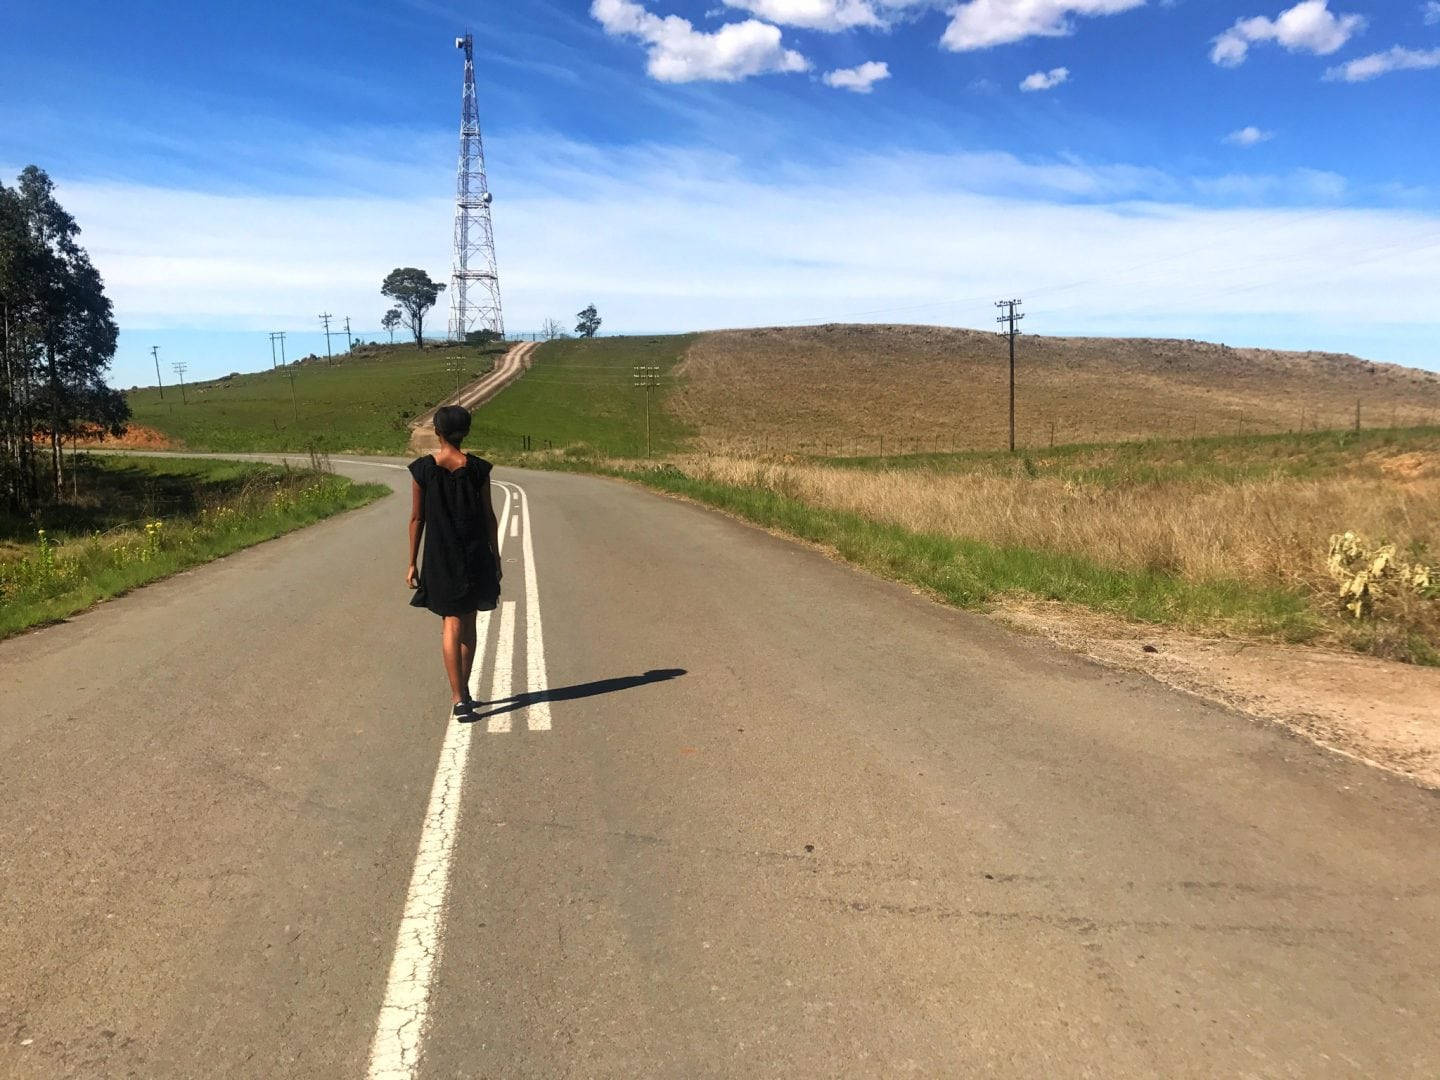 Meandering through the Midlands in Kwa-Zulu Natal, South Africa